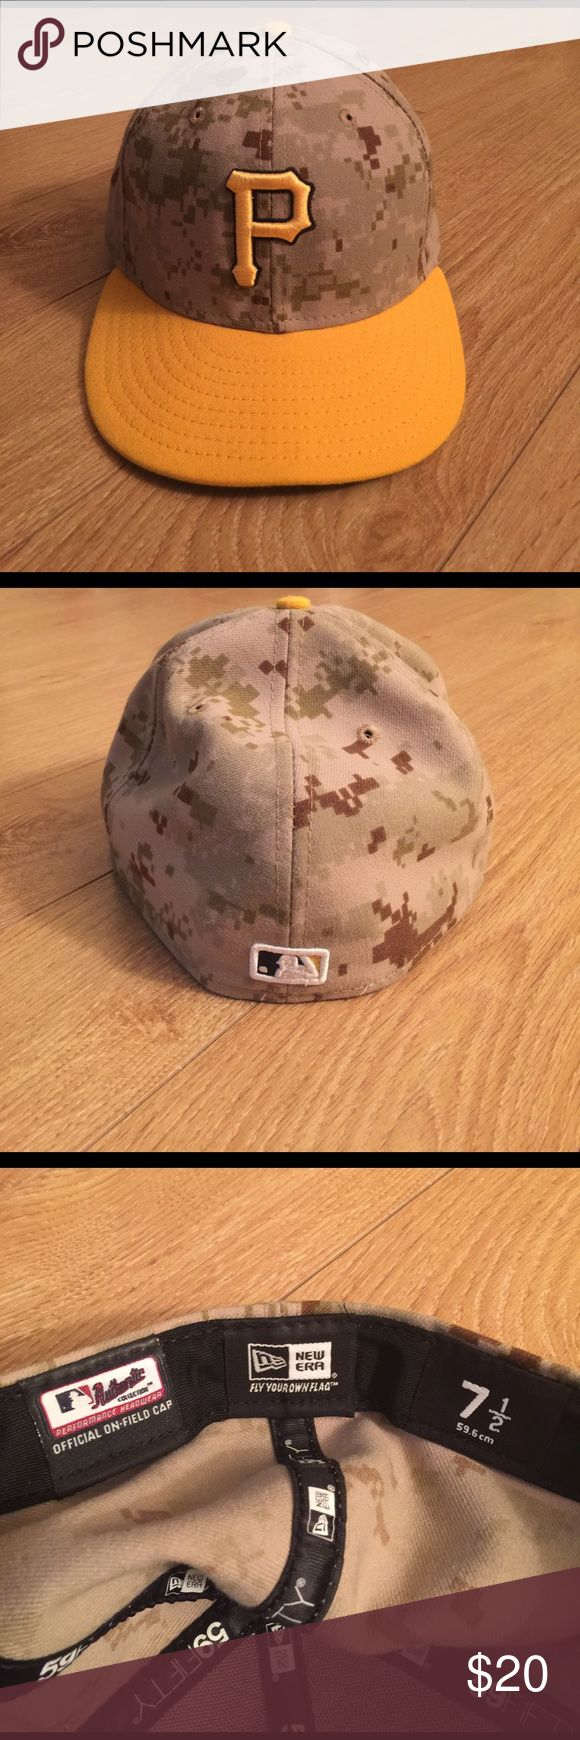 New Era Veterans Day Pittsburgh Pirates hat New Era Veterans Day Pittsburgh Pirates hat. New without tags. Size 7 1/2 New Era Accessories Hats